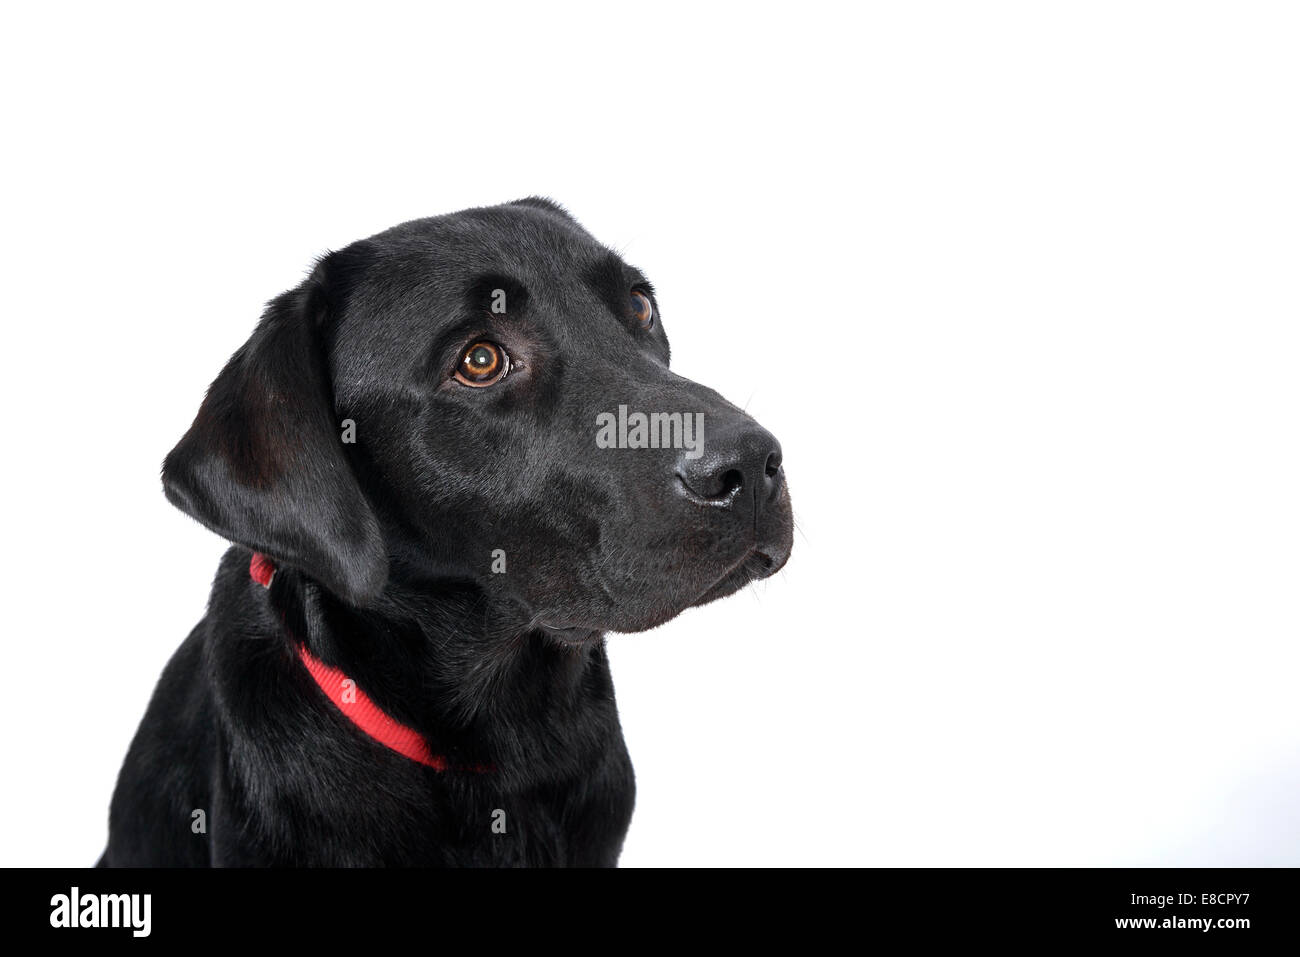 Sad looking labrador retriever cut out isolated on white background - Stock Image